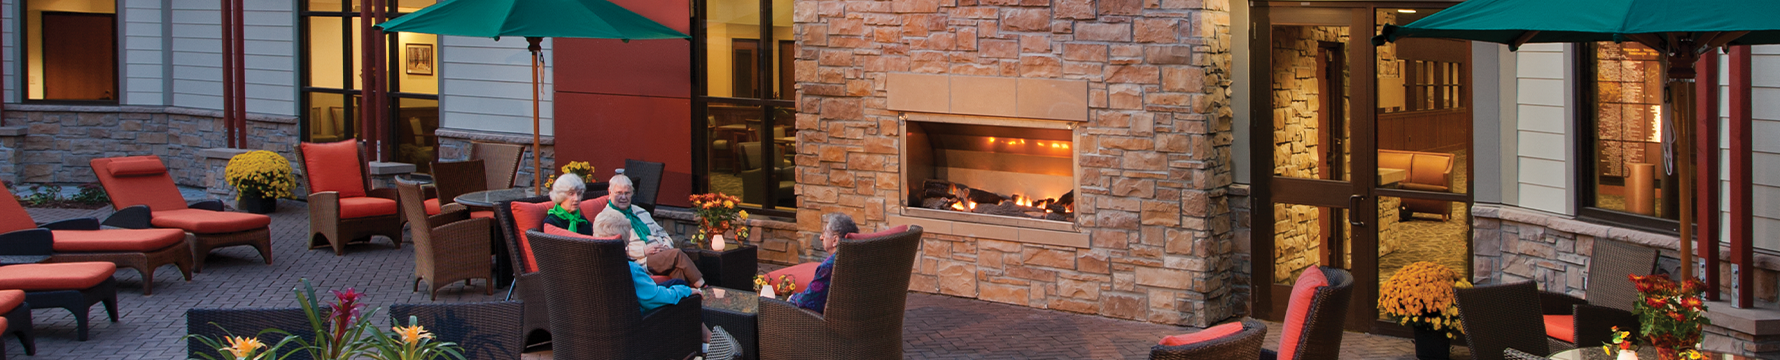 An outdoor sitting area with a fireplace at Friendship Village of Bloomington senior living community